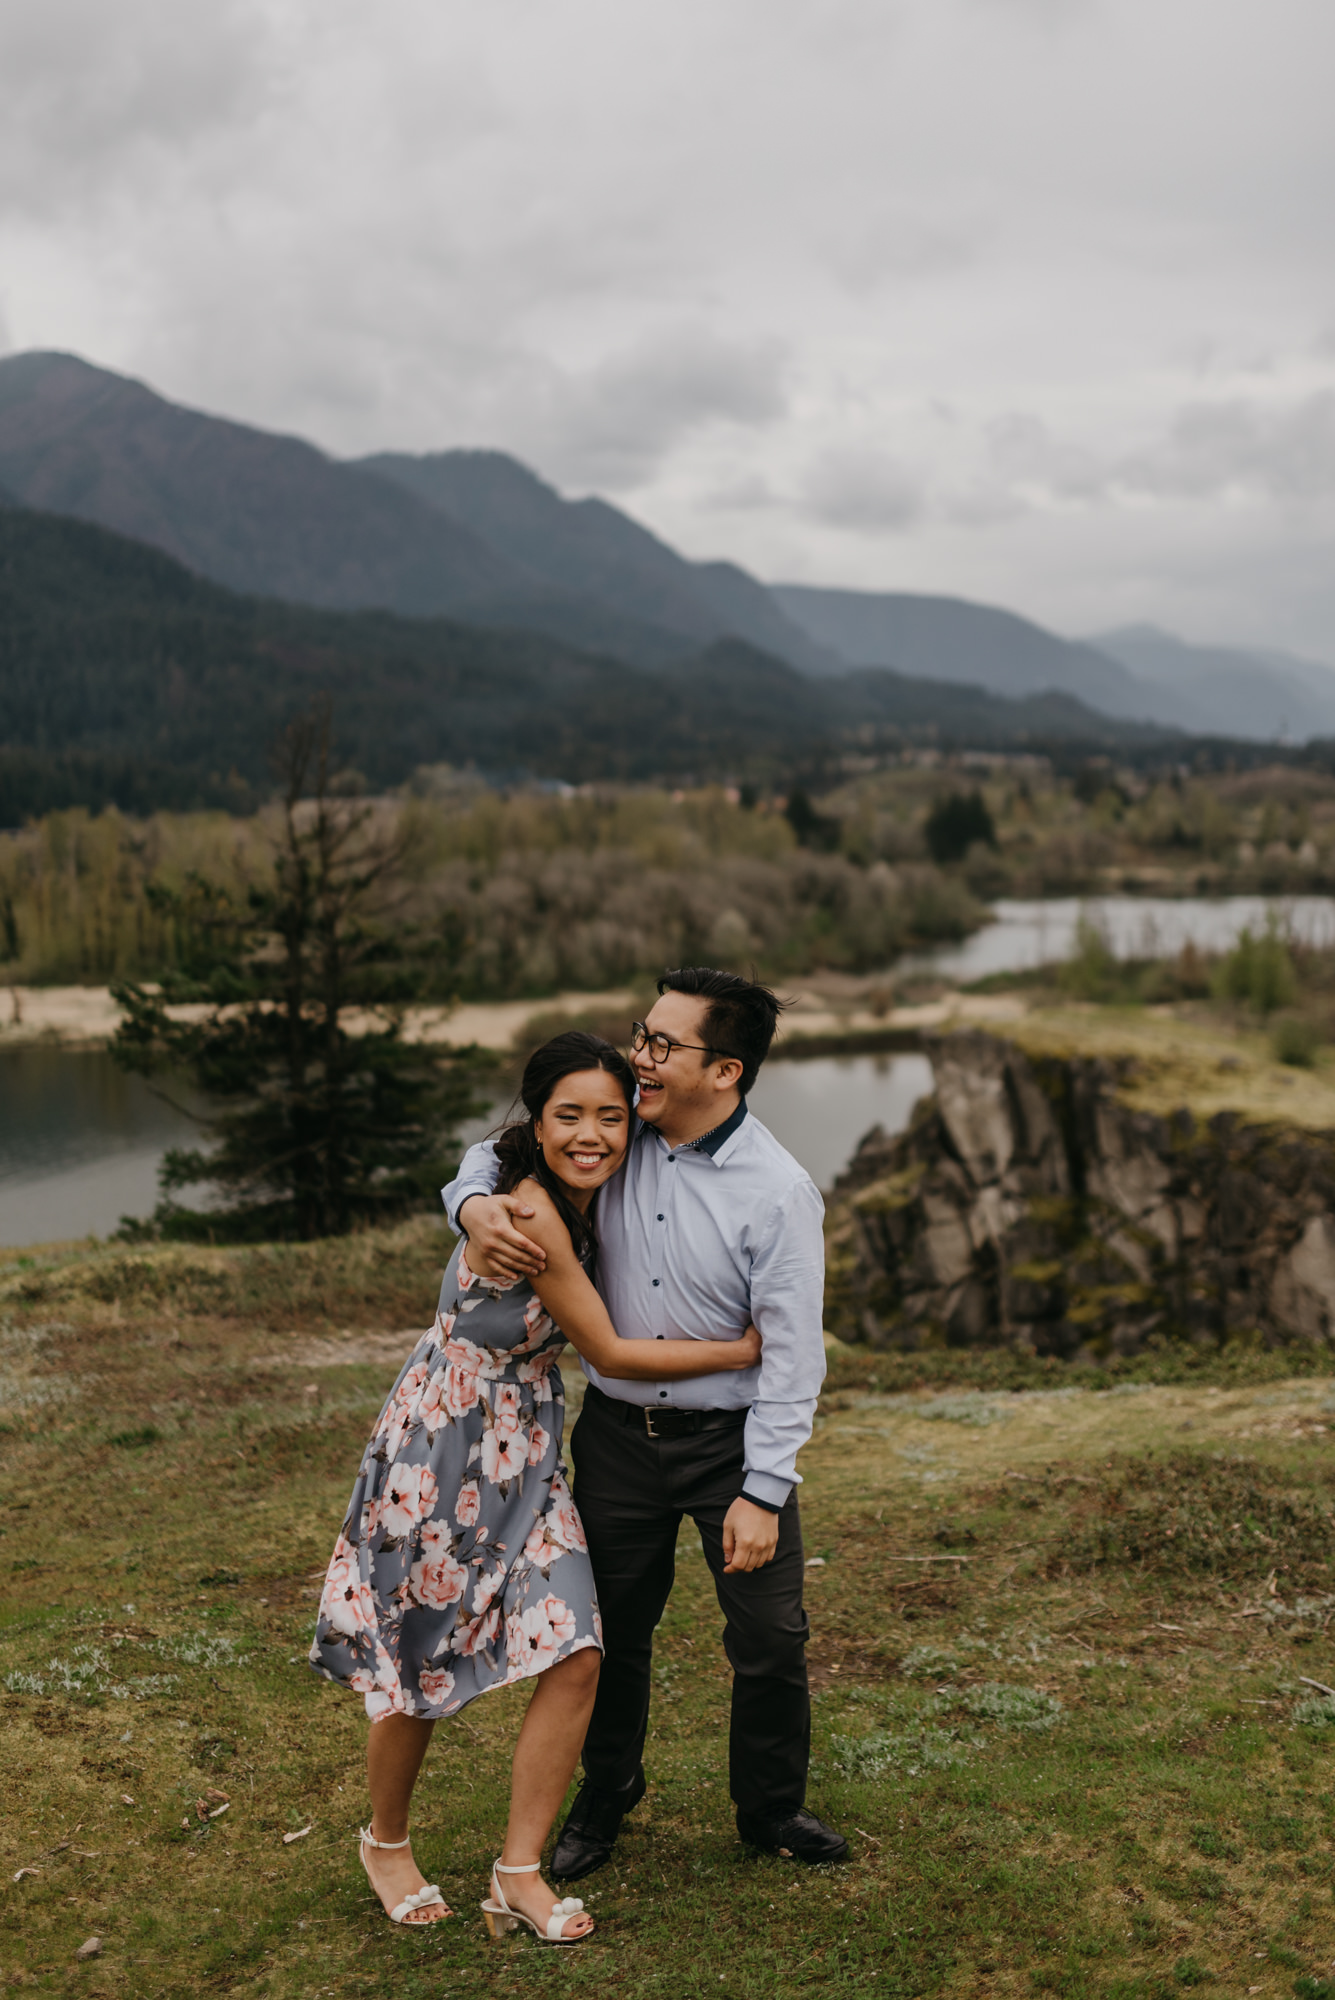 cascade-locks-engagement-cloudy-fun-sunset-4892.jpg